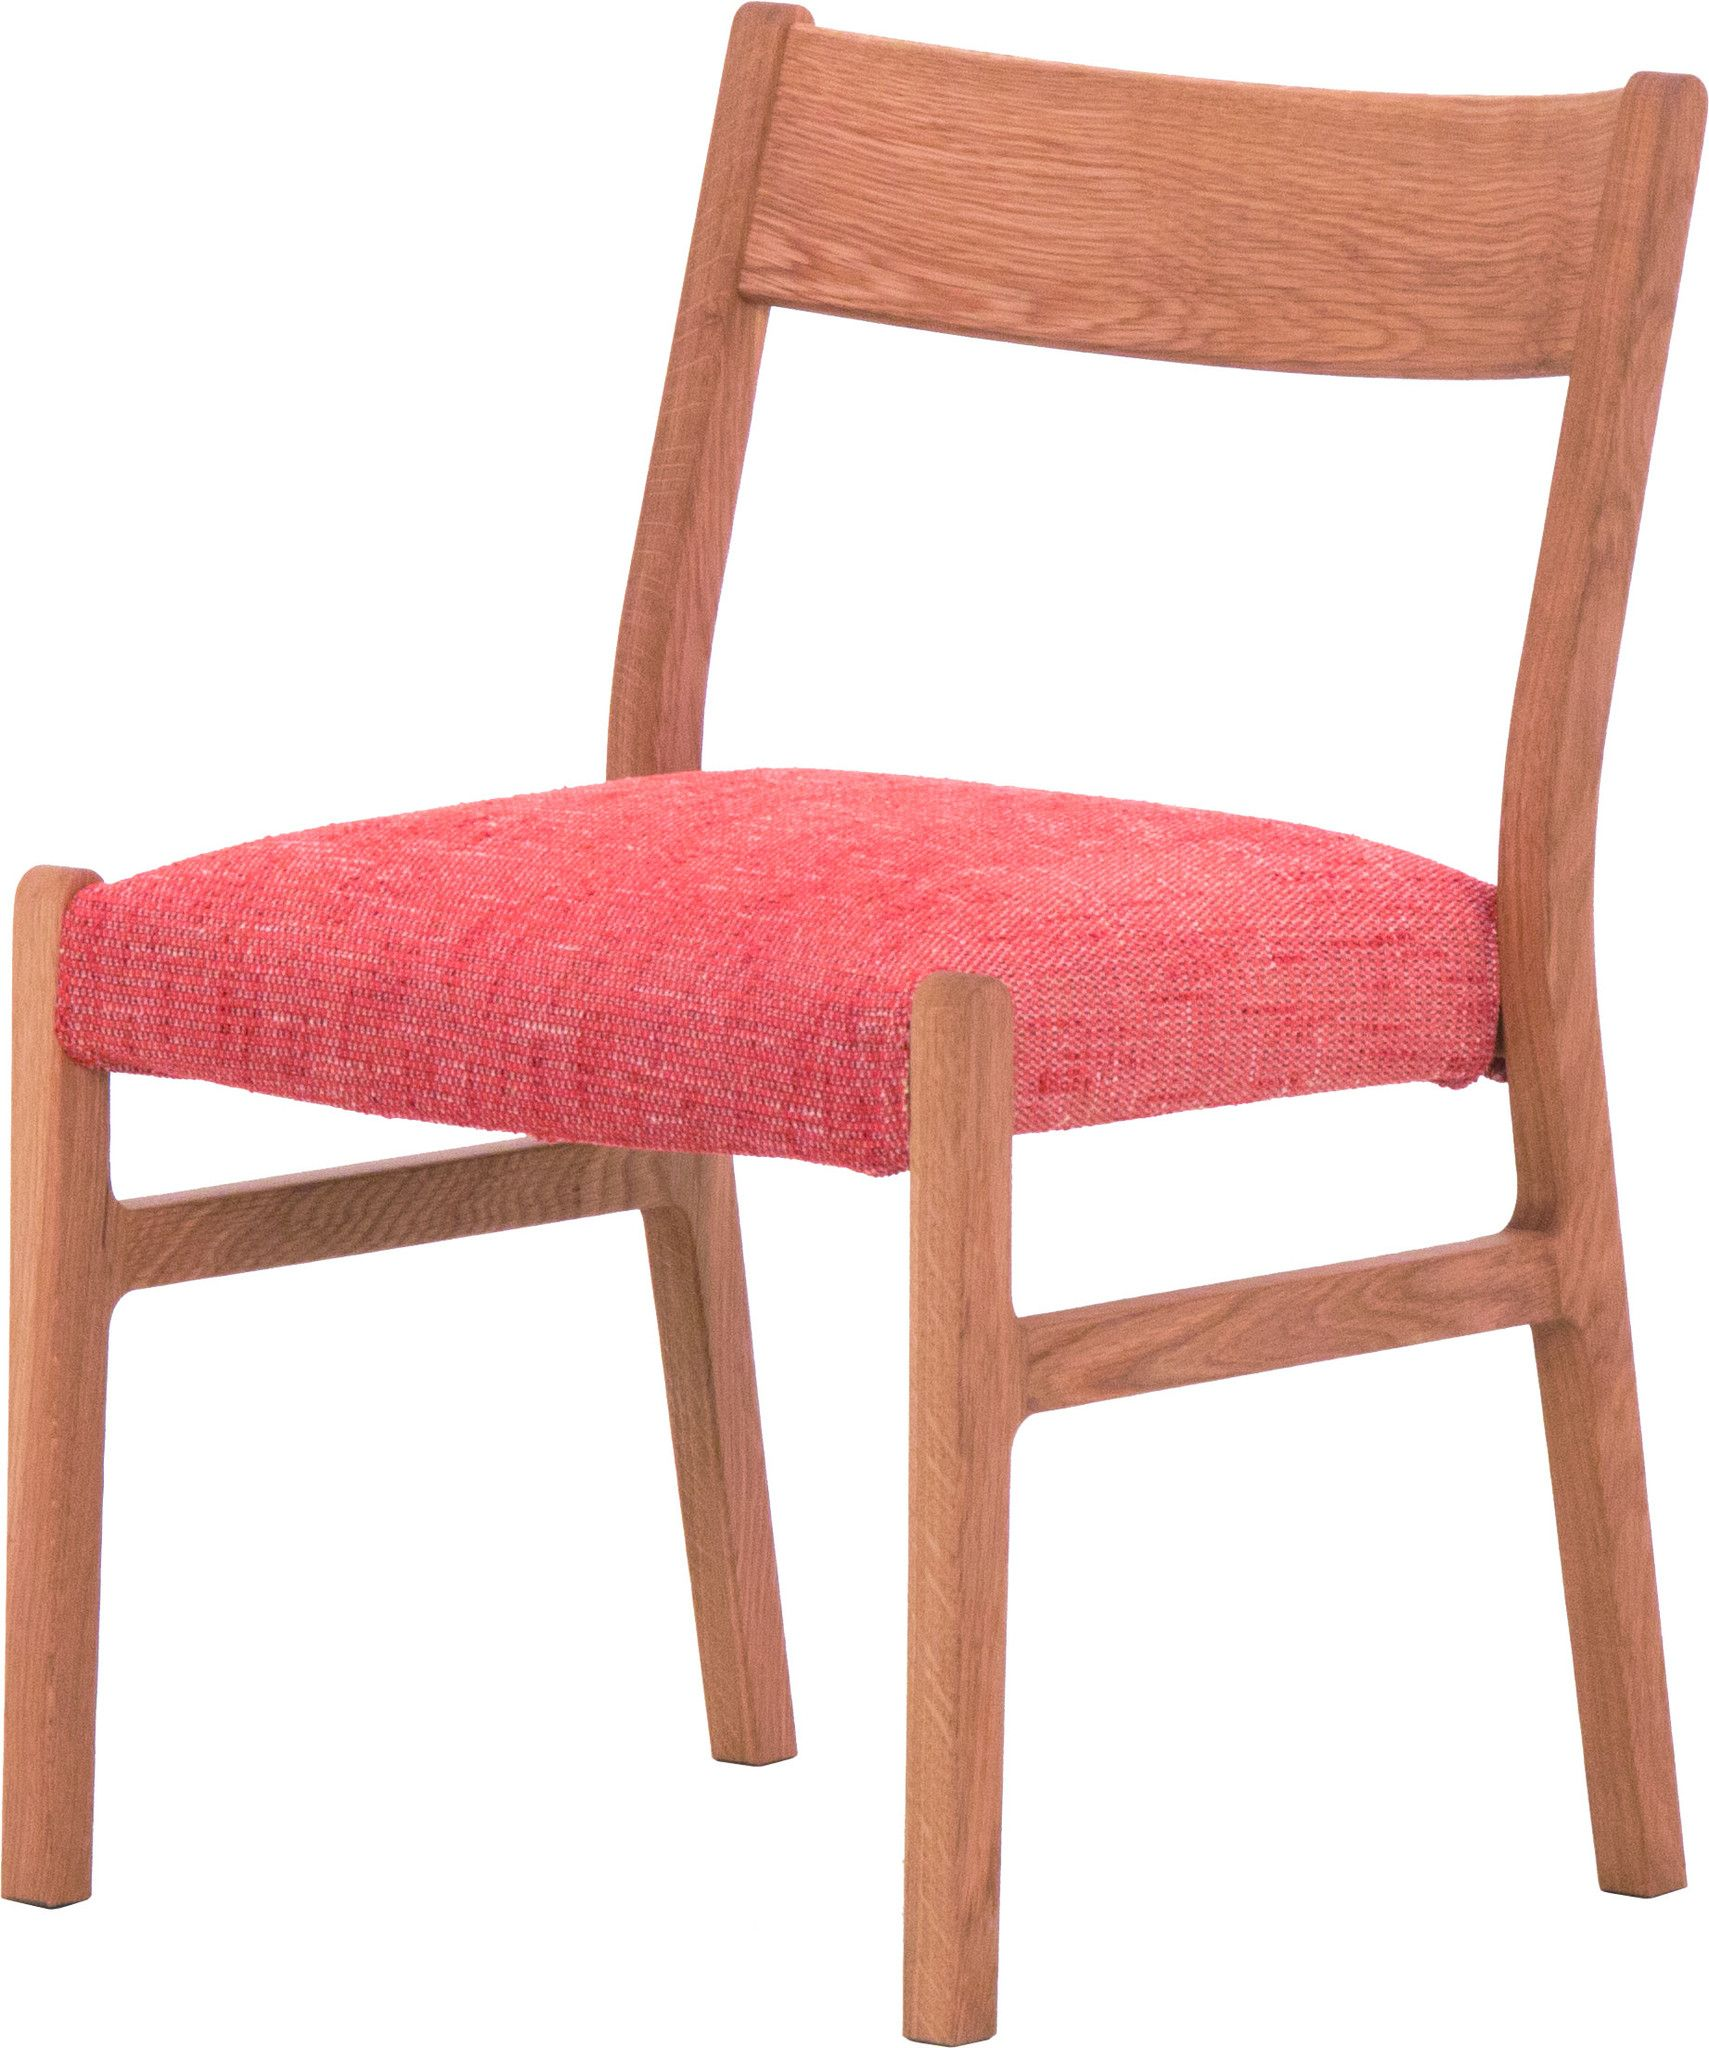 Nagano Interior - LARGO chair DC304-1N - Dining Chair